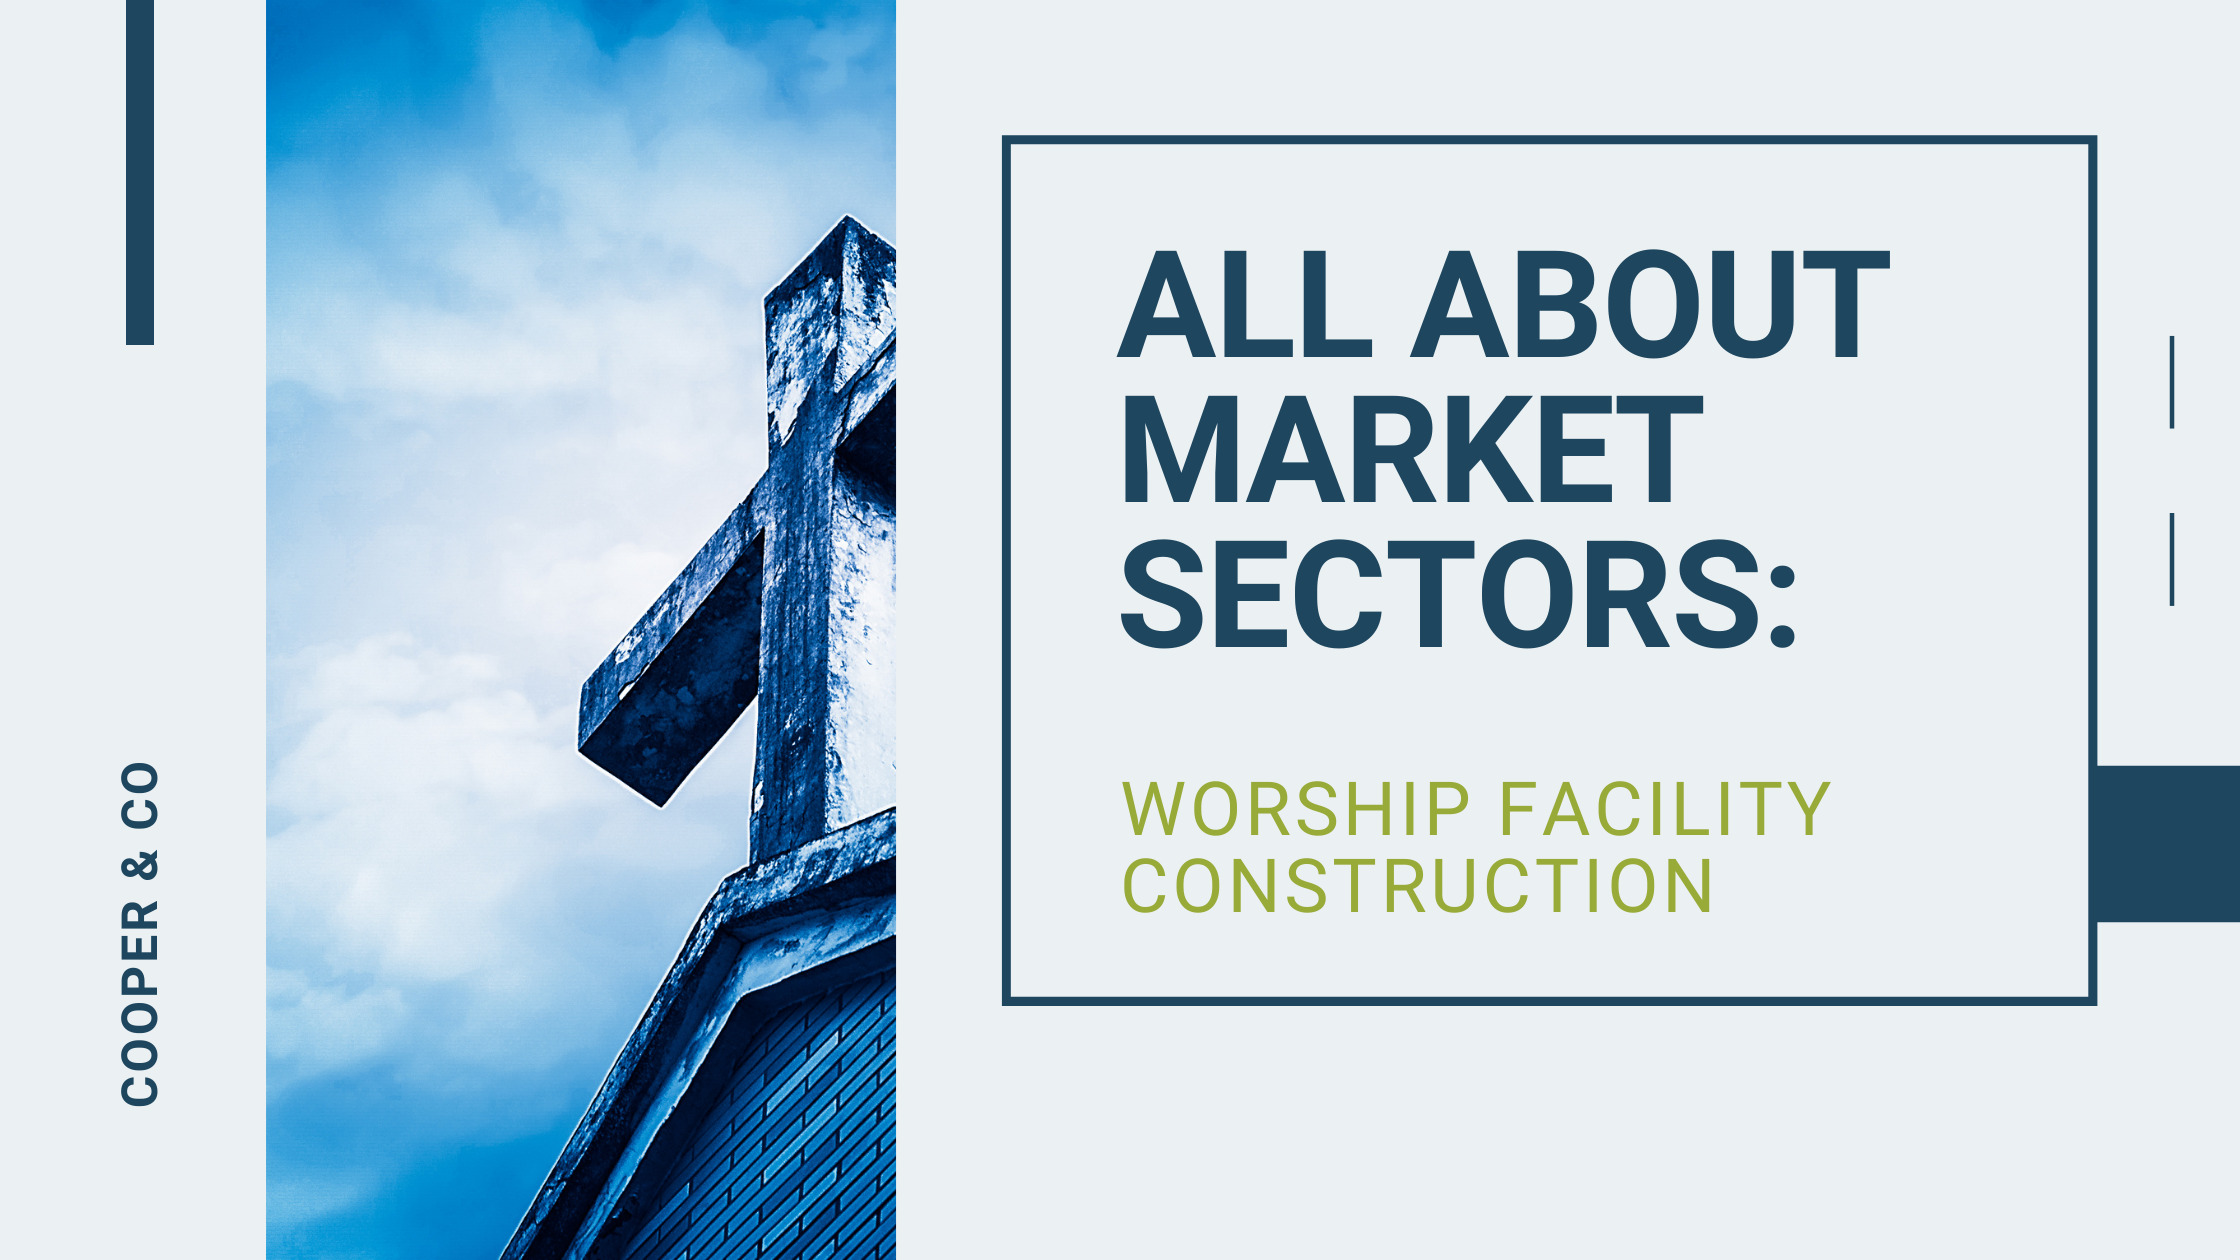 all about market sectors| Worship Facilities & Church Construction | Cooper & Company General Contractors